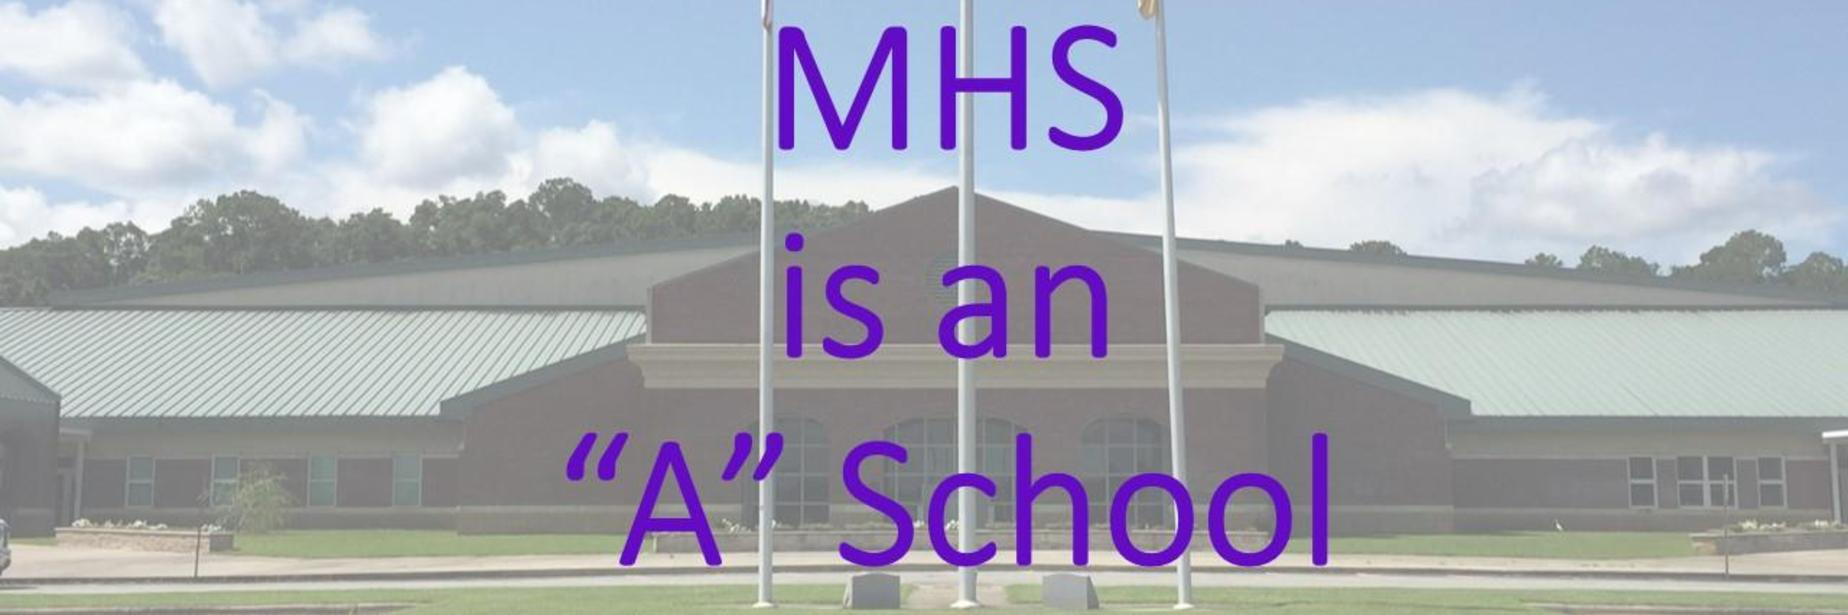 mhs is an a school